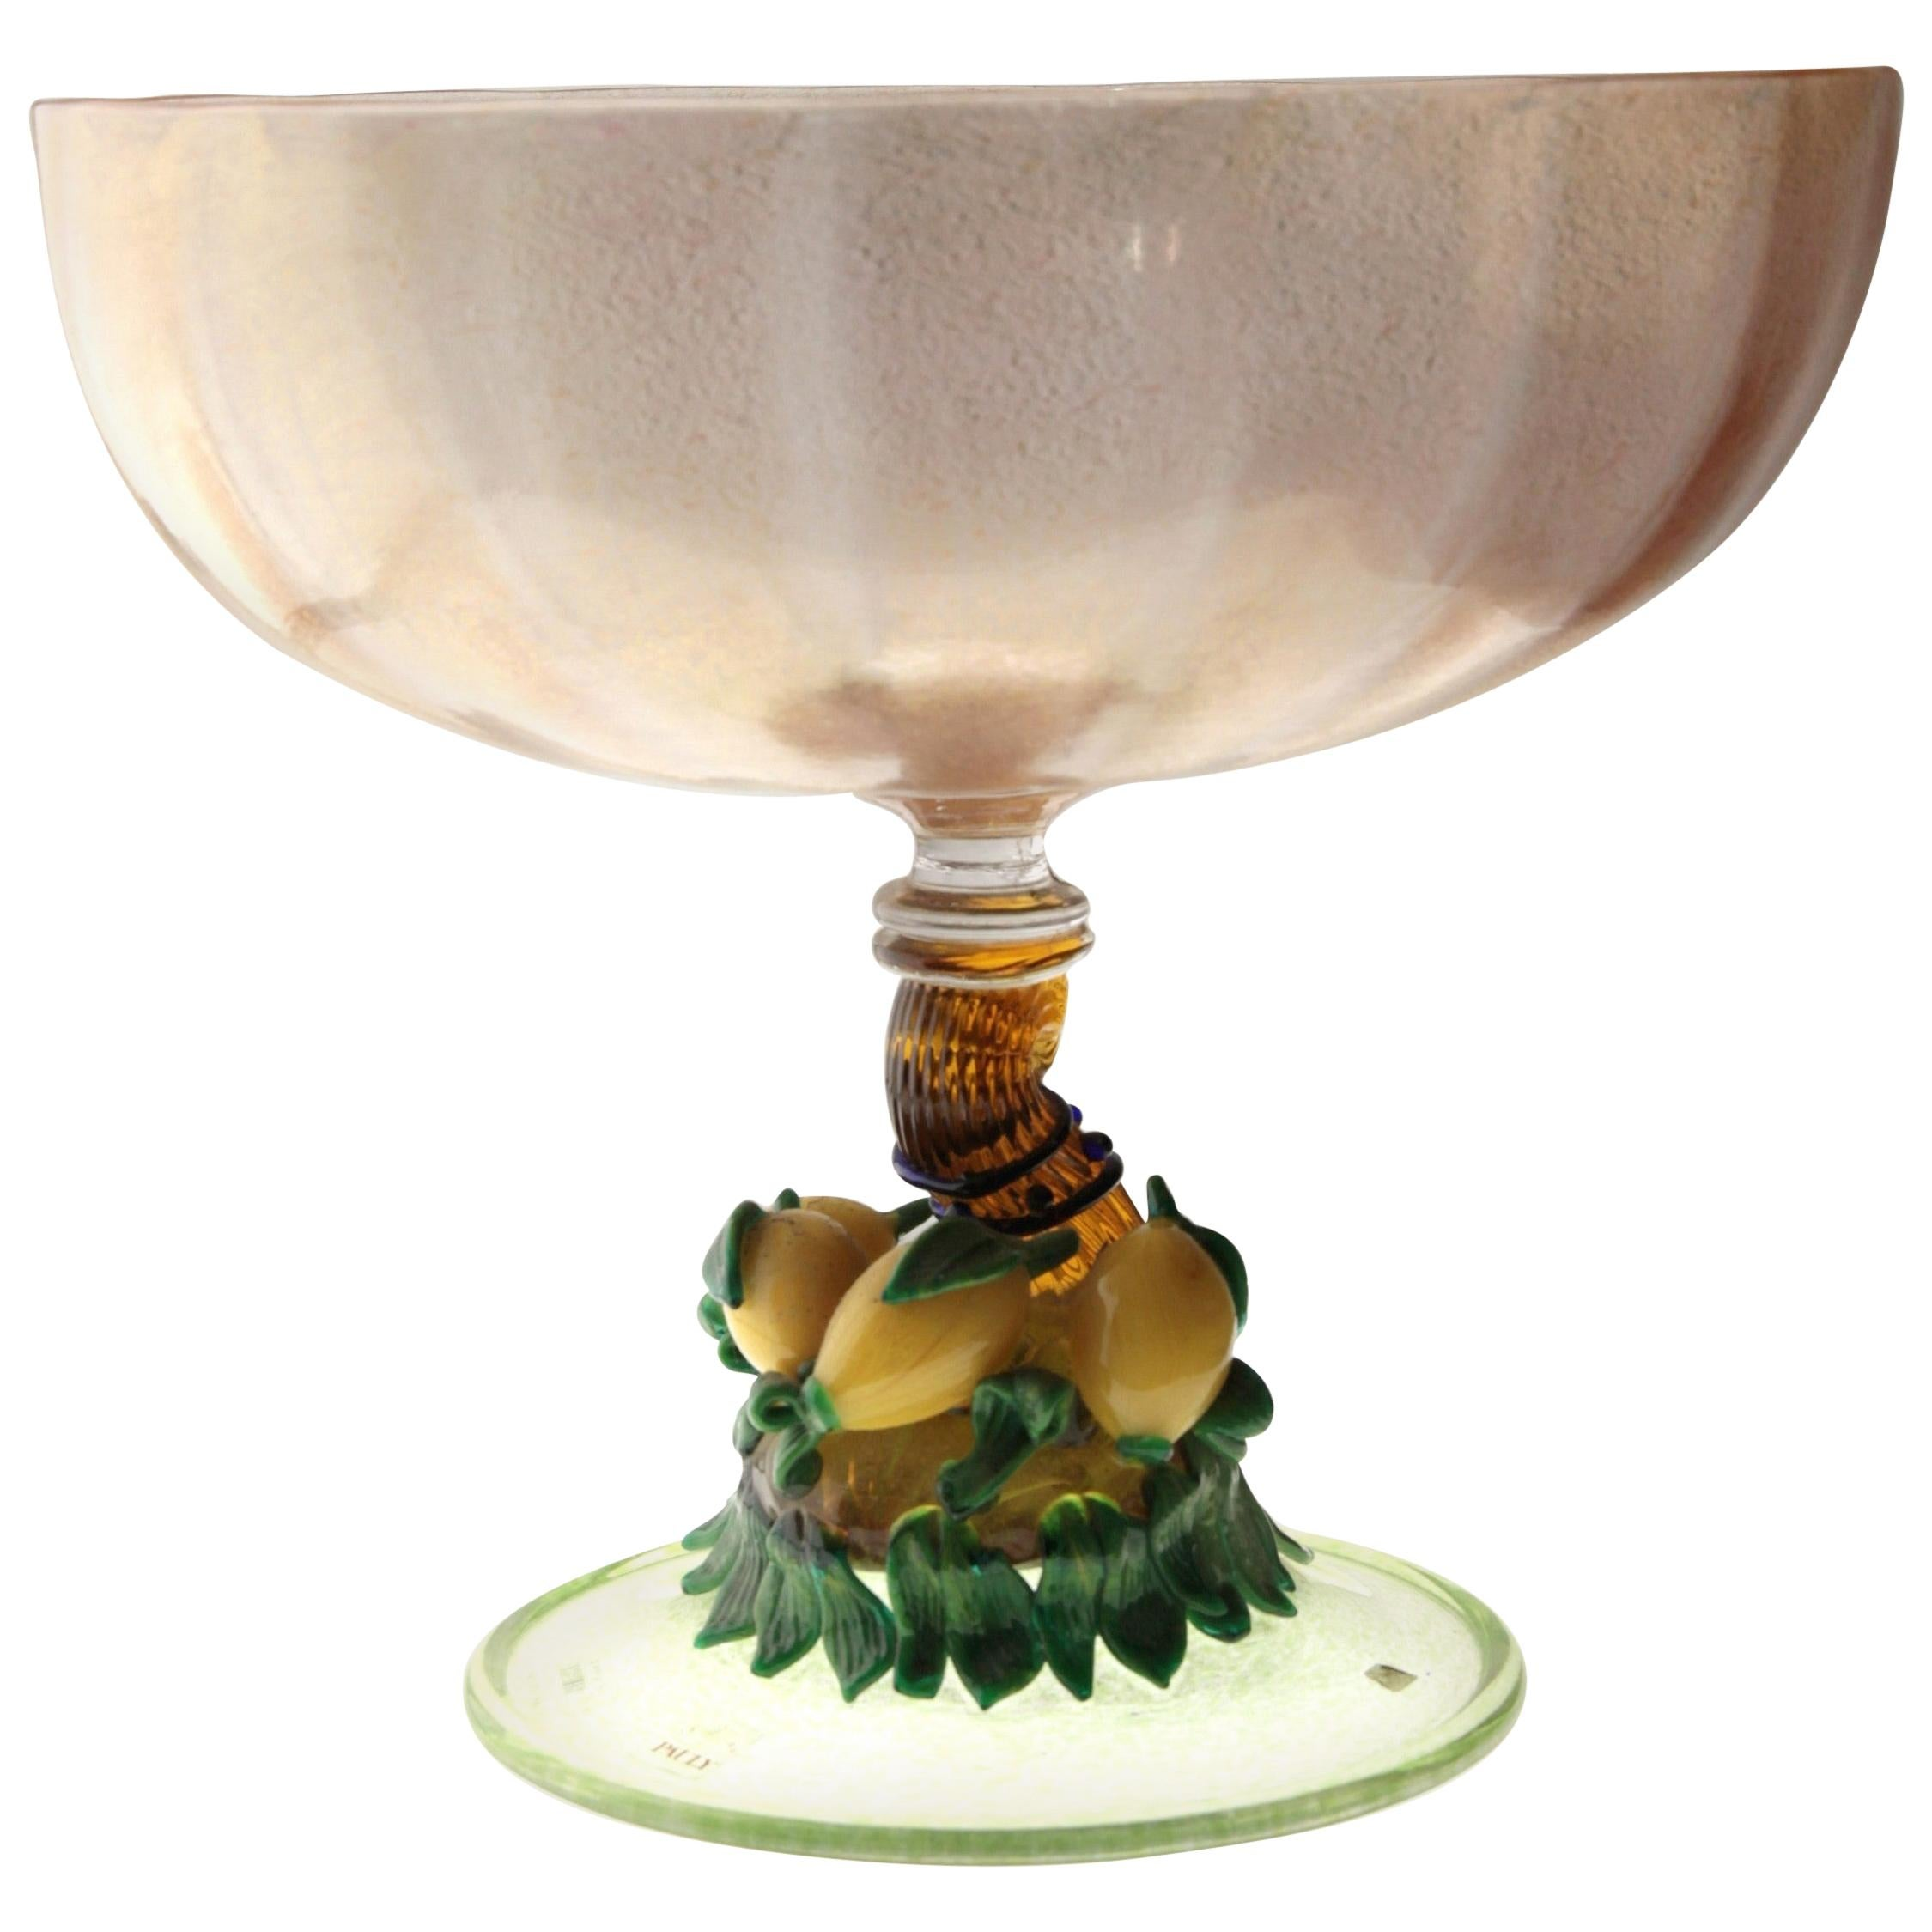 Pauly Venice Cornucopia Footed Bowl, Murano Glass, Gold Leaf Applications, 1960s